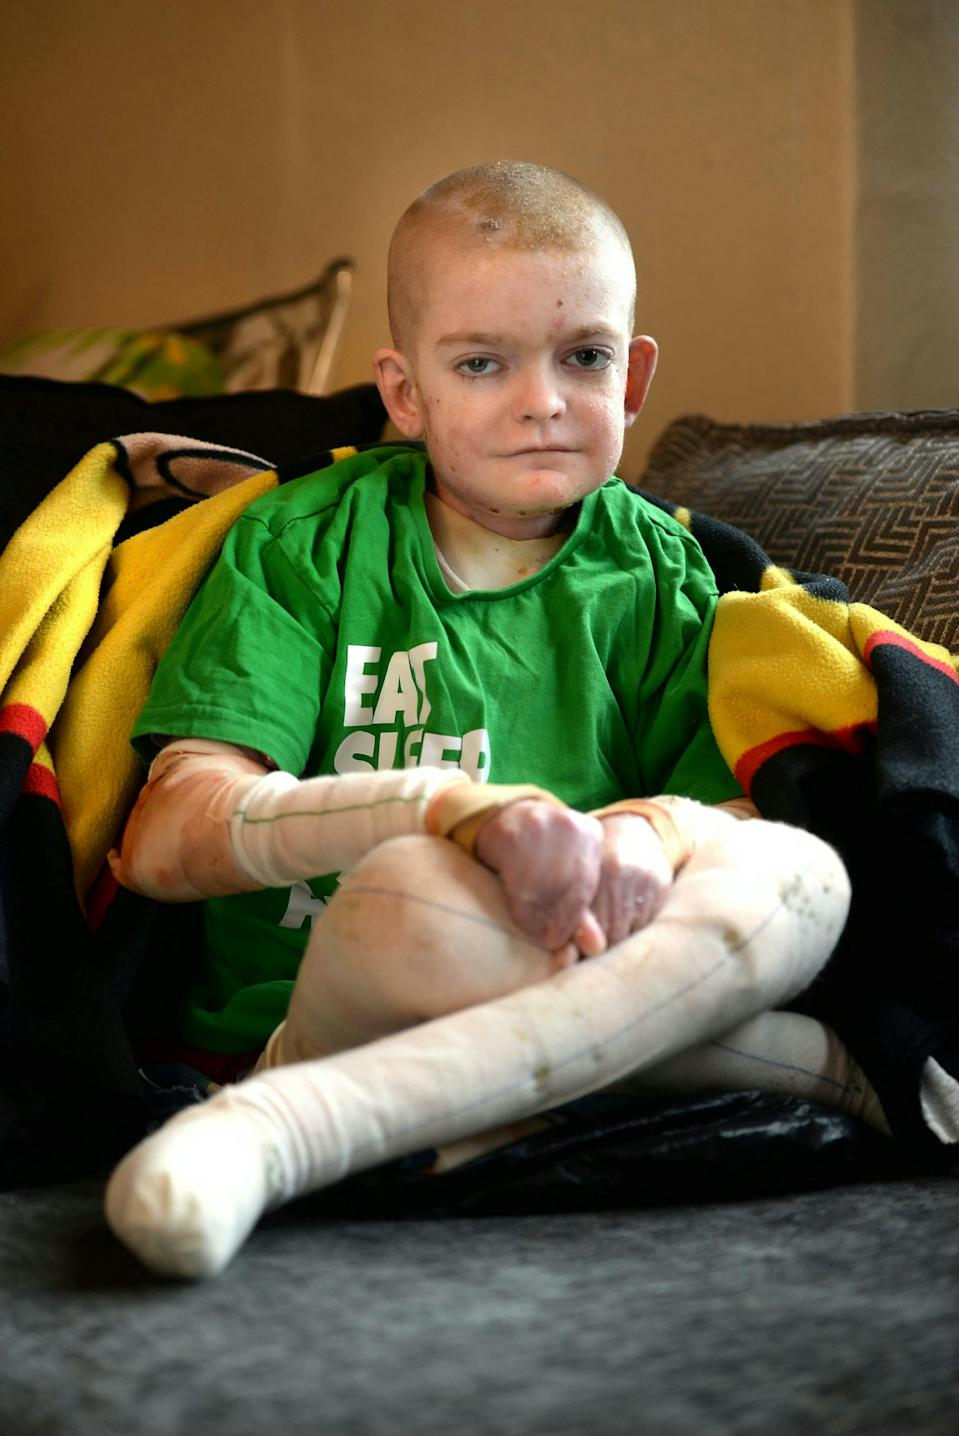 Rhys has been battling the skin condition since birth [Photo: SWNS]